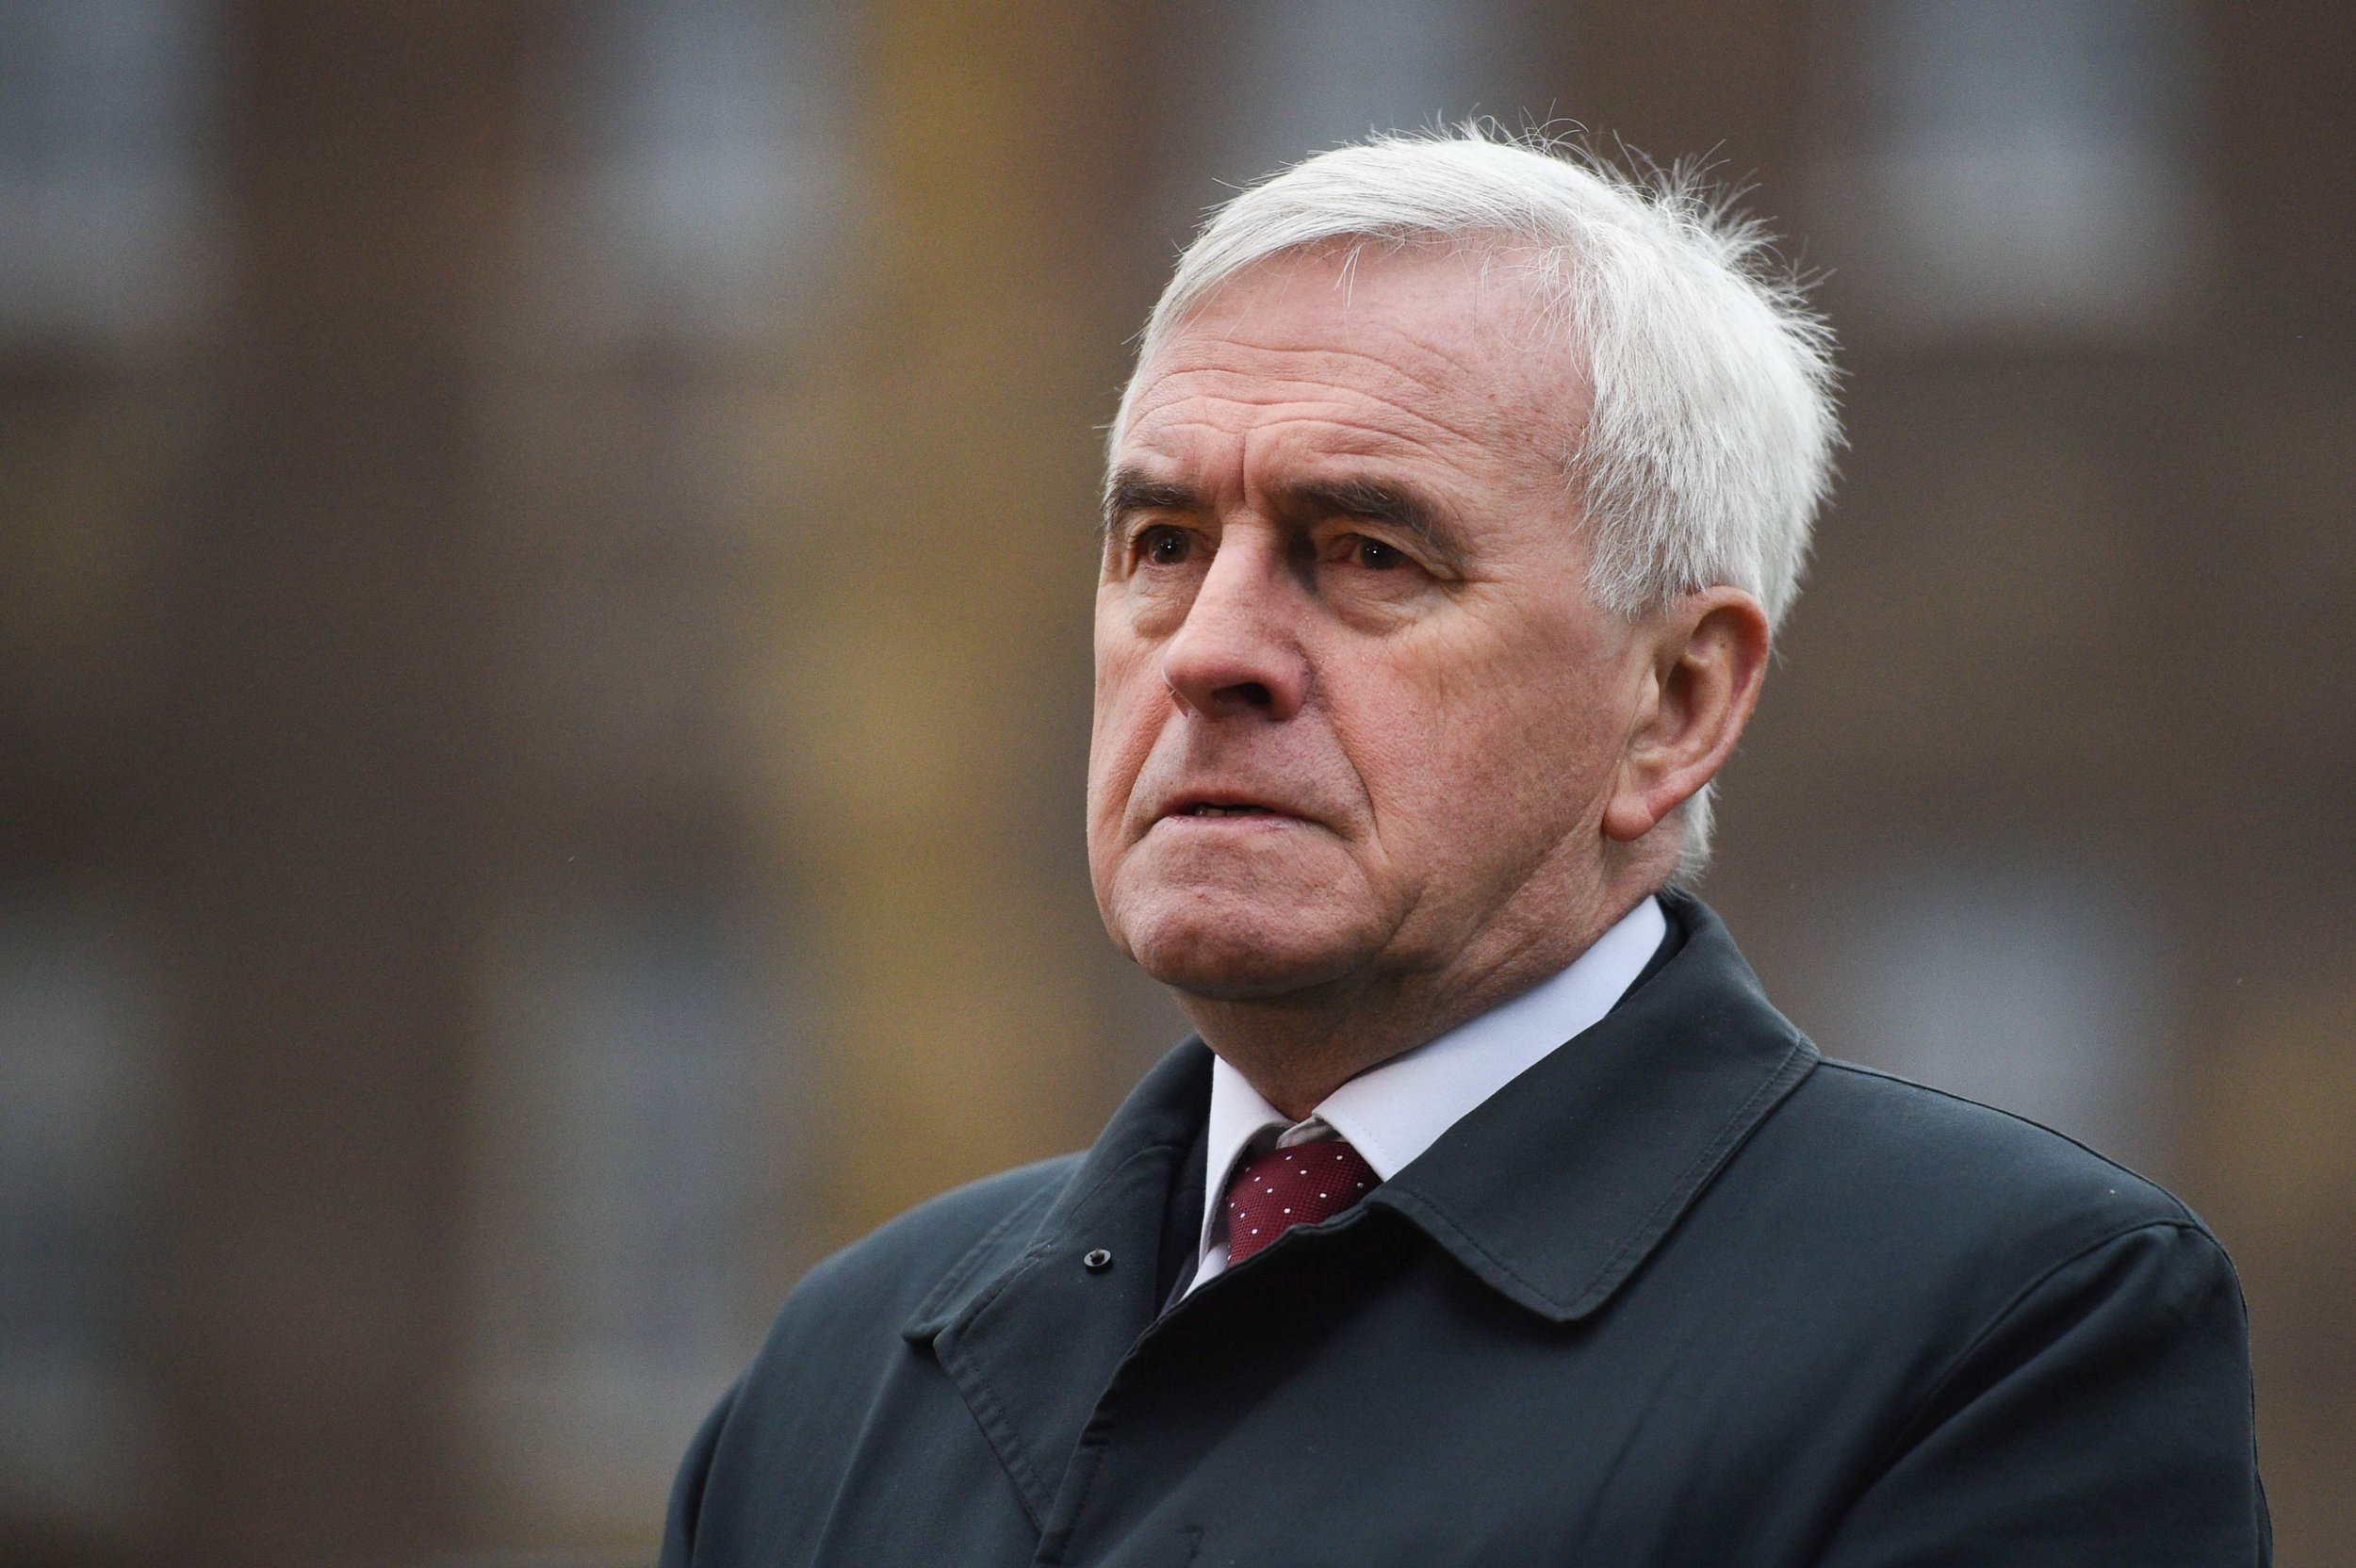 "Labour Party MP and Shadow Chancellor of the Exchequer John McDonnell speaks to the media on College Green outside the Houses of Parliament in central London on January 16, 2019. - Prime Minister Theresa May was left ""crushed"" and ""humiliated"", Britain's newspapers said today as they raked over the fallout from parliament's huge rejection of her EU divorce deal. (Photo by Oli SCARFF / AFP)OLI SCARFF/AFP/Getty Images"